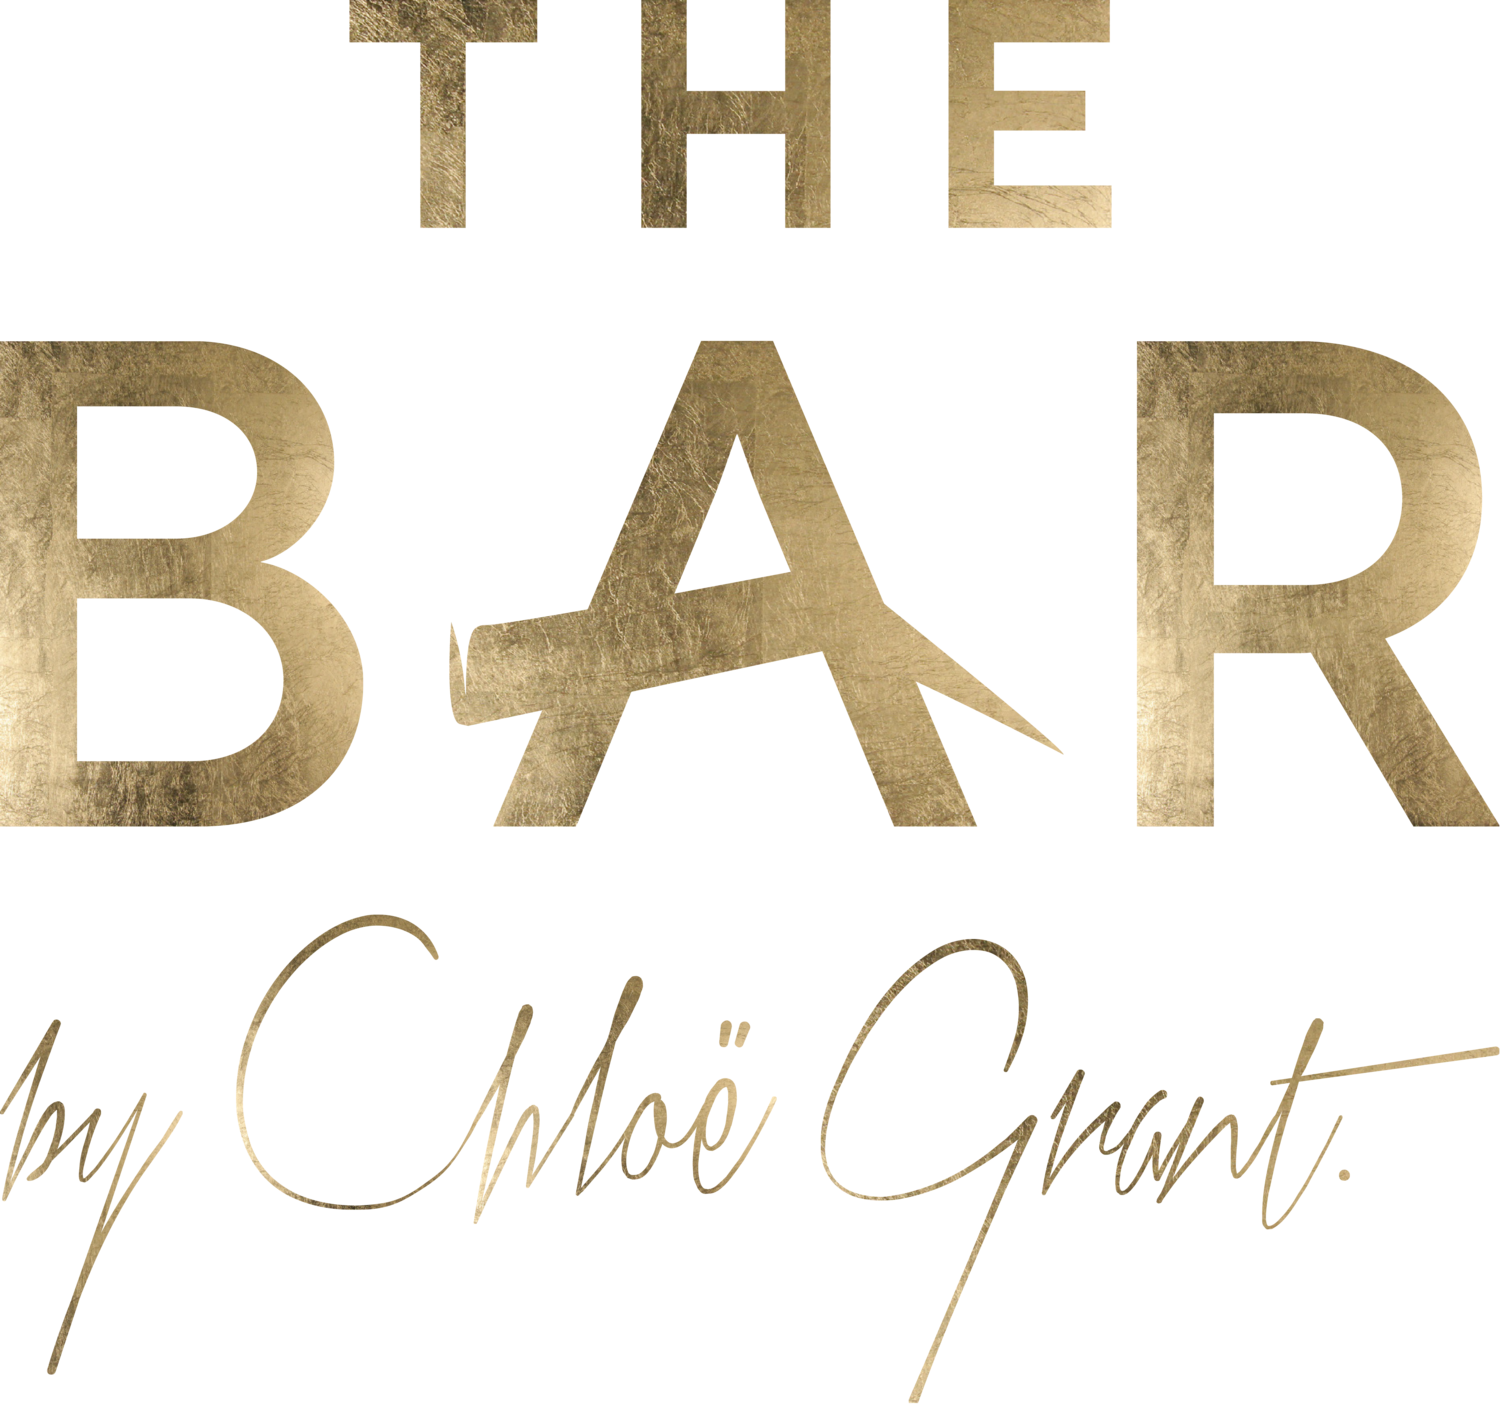 The Bar by Chloë Grant